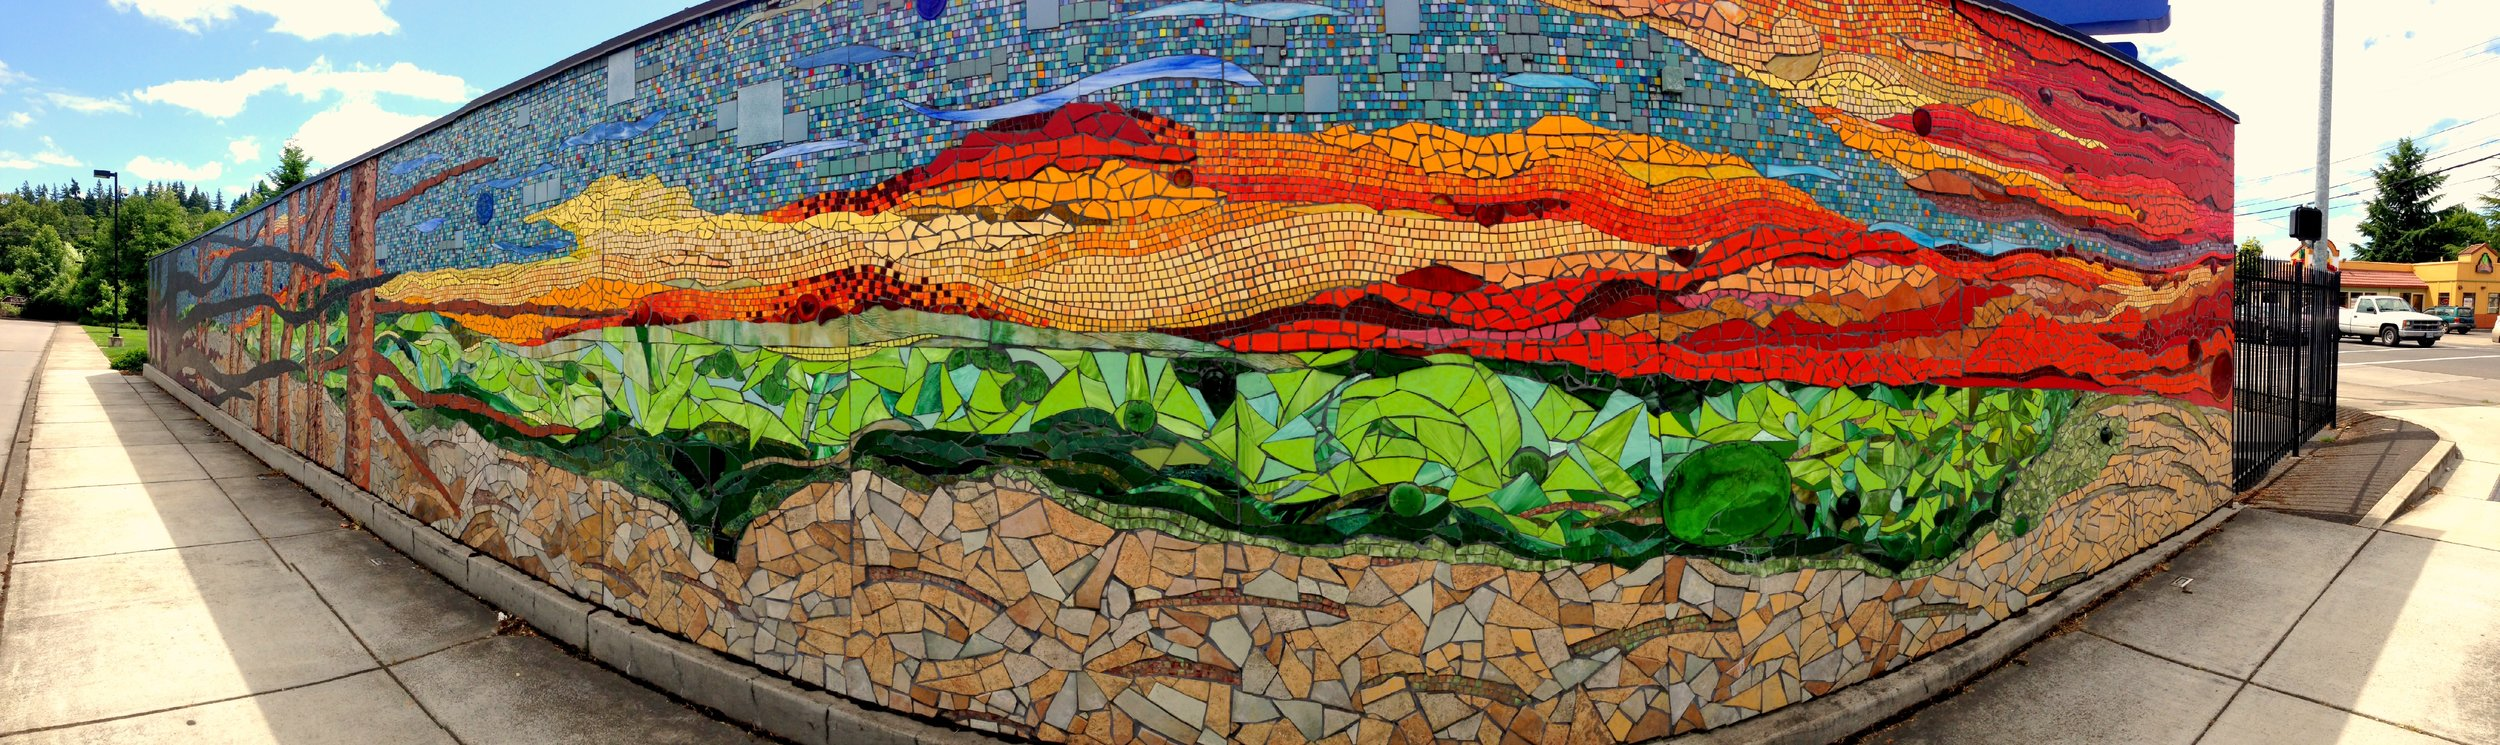 The Sun (mosaic mural, 2004), by Mary Beth Llorens